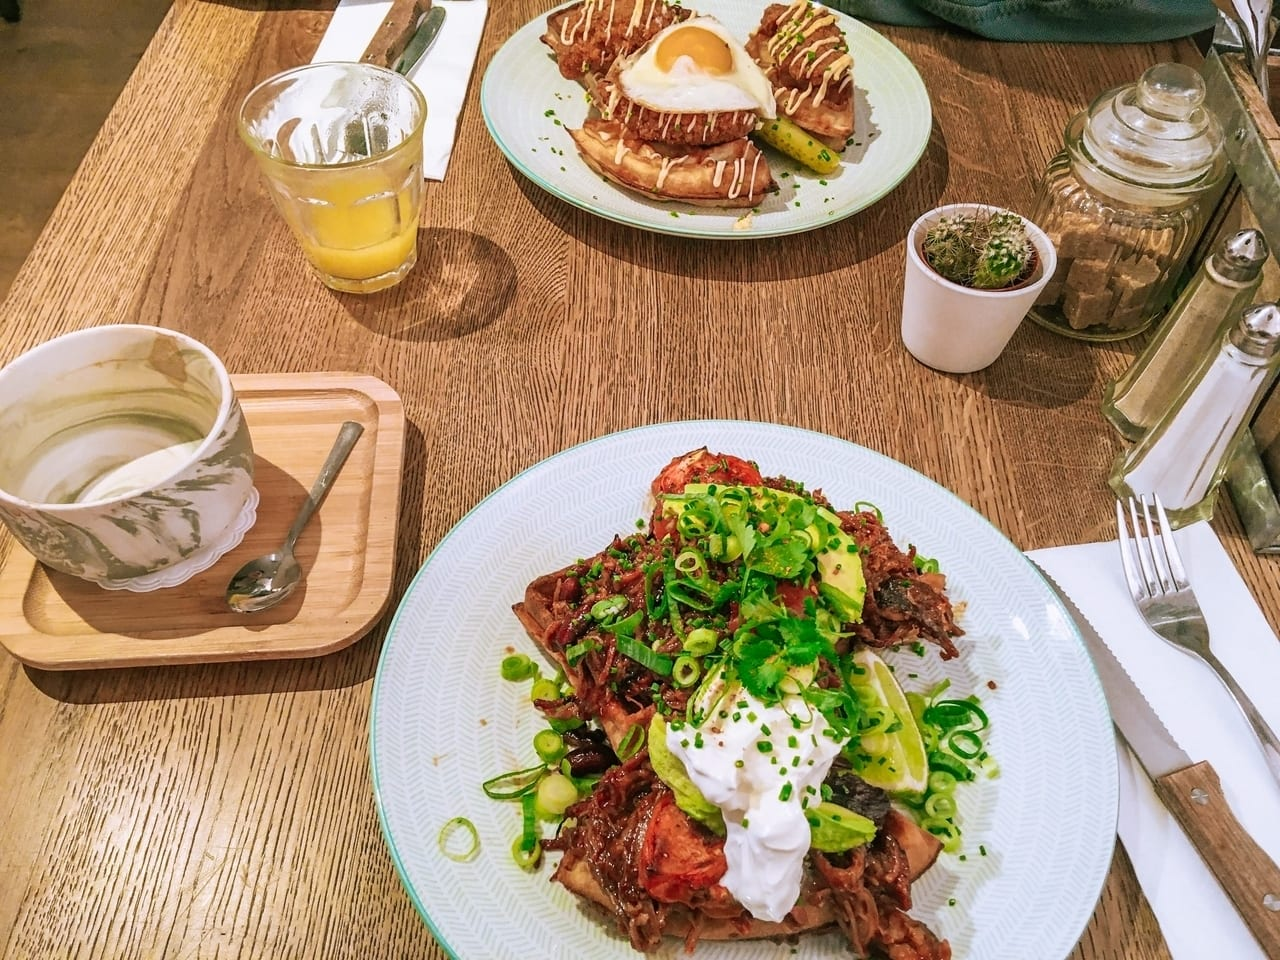 Brunch during my one day in Ghent, Belgium